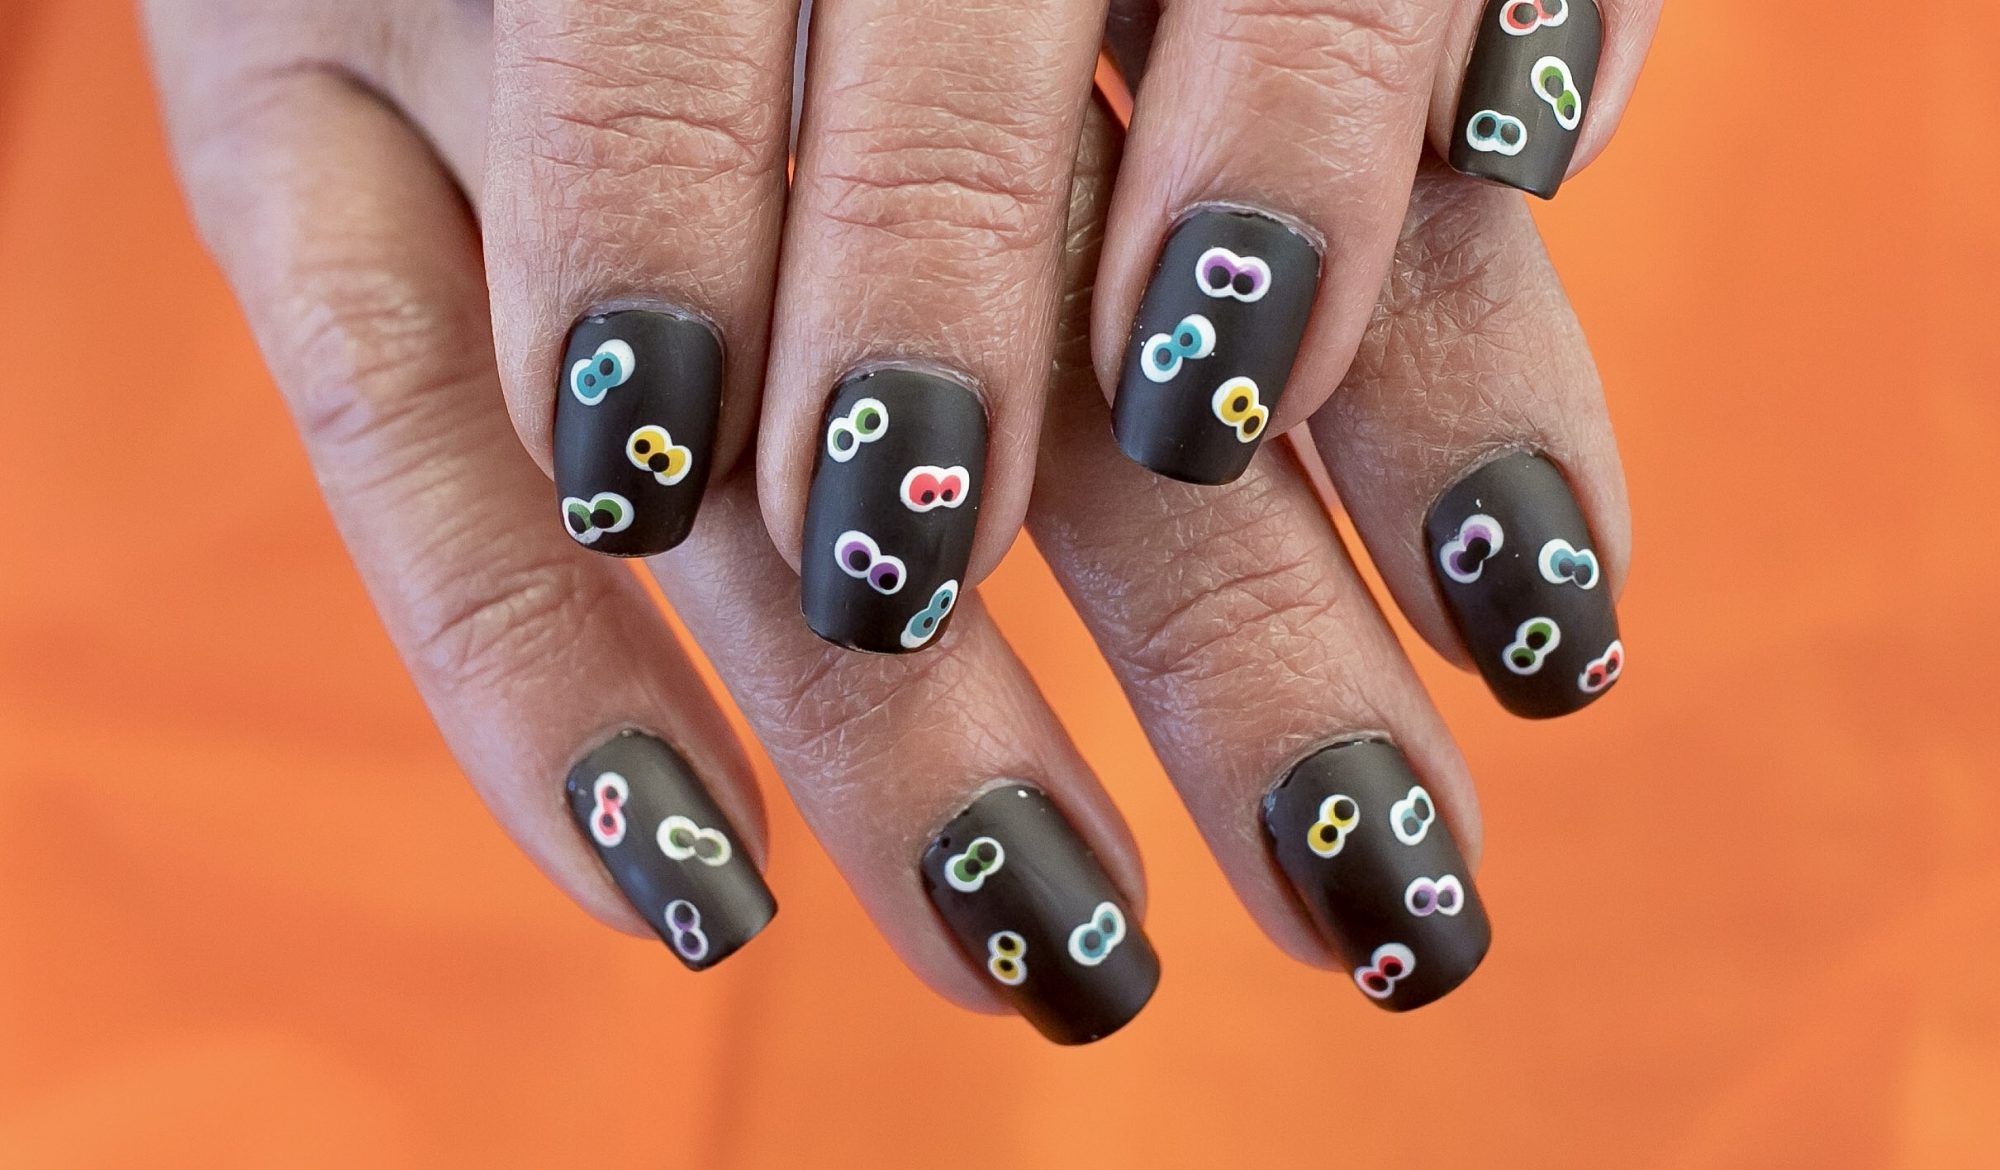 Diy Halloween Nail Art Ideas How To Paint Nails For Halloween Hellogiggles